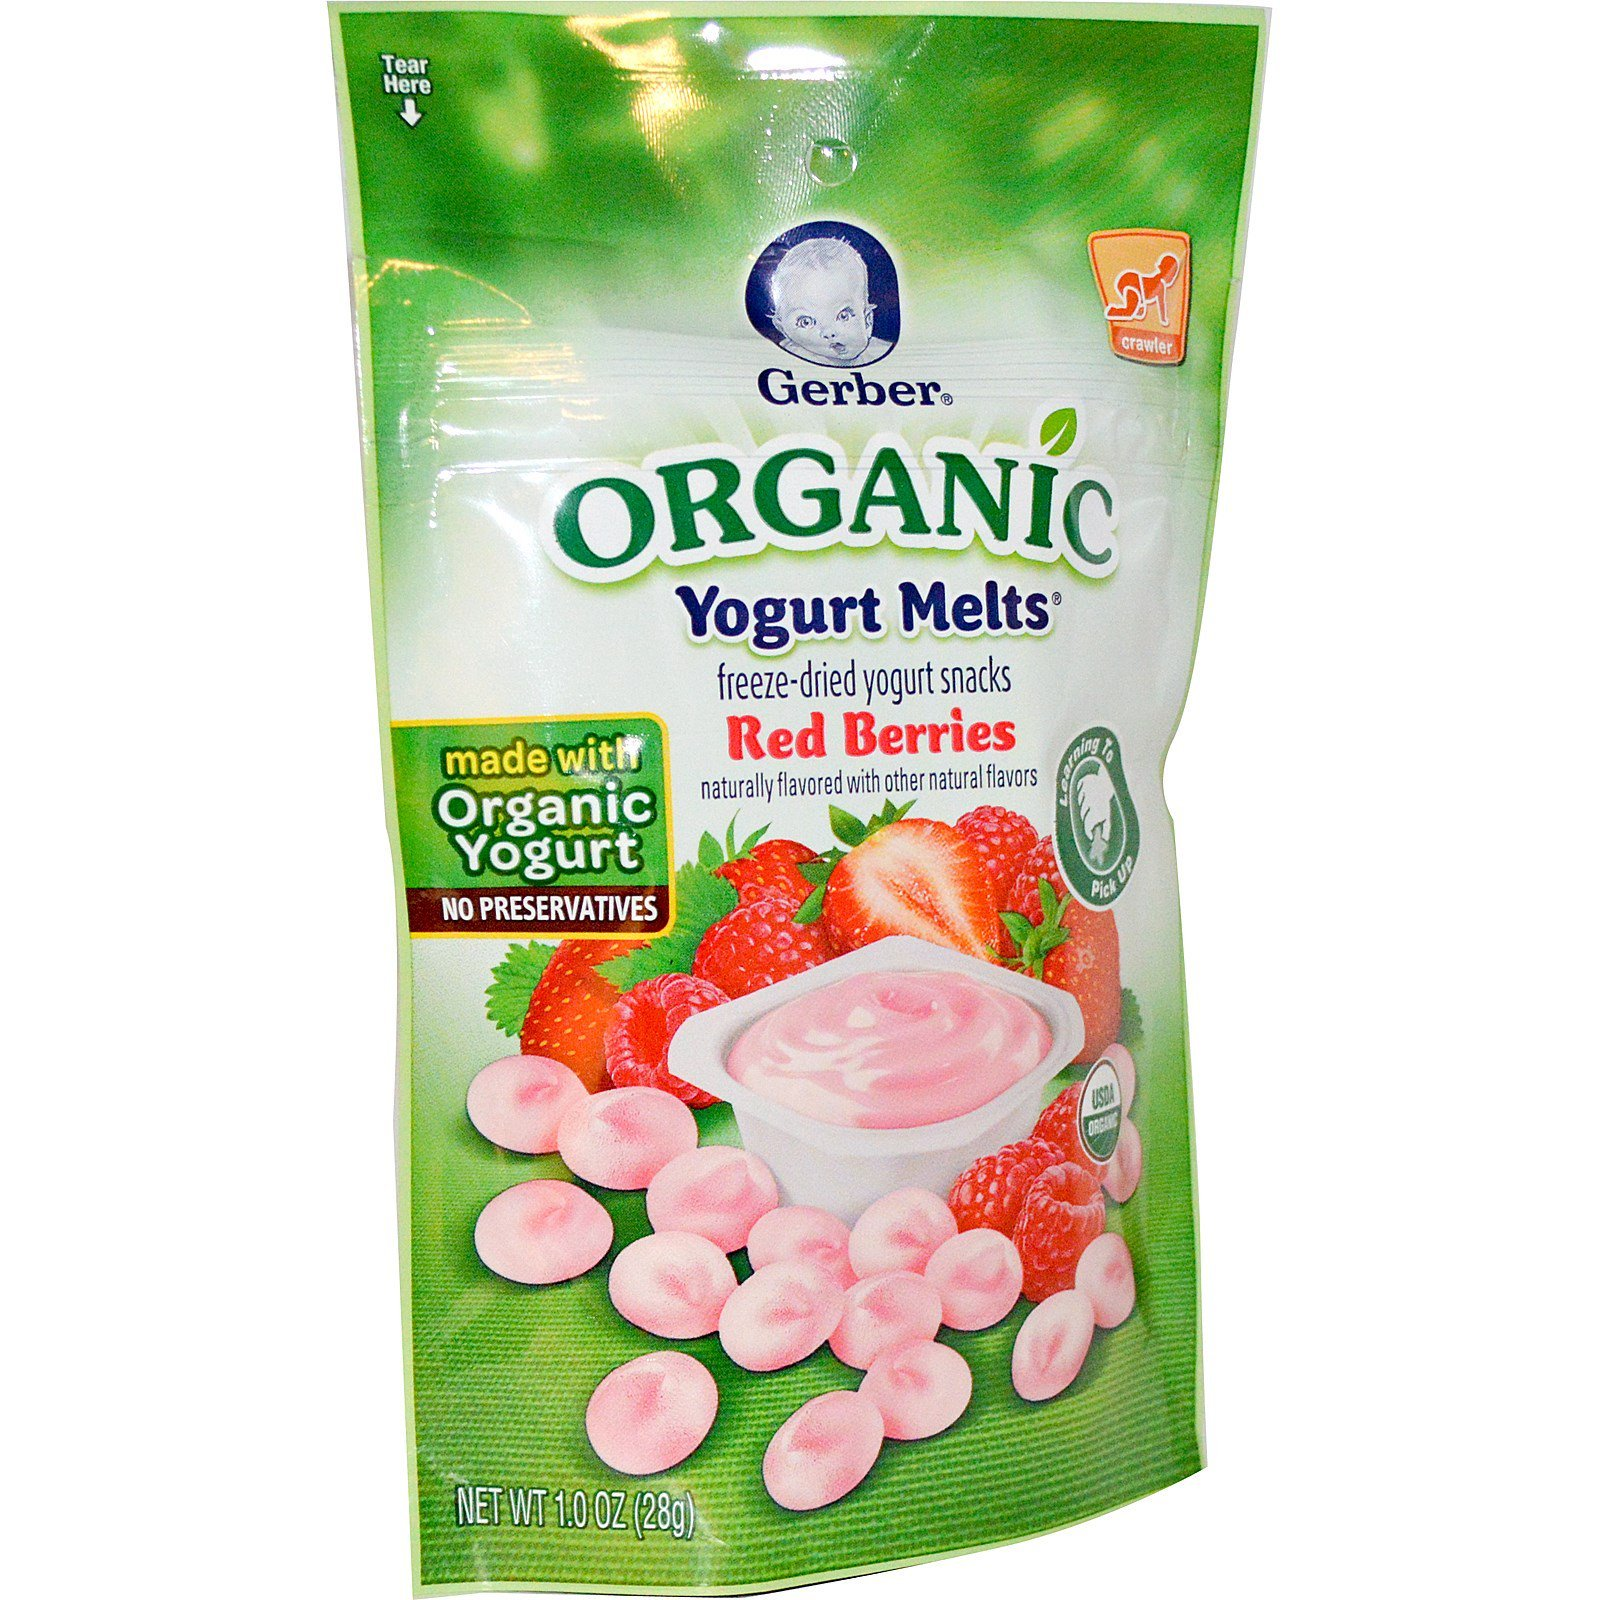 This item: Gerber Organic Yogurt Melts Fruit Snacks, Banana and Strawberry, 1 Ounce (Pack of 7) $ ($ / Ounce) In Stock. Ships from and sold by eastreads.ml().